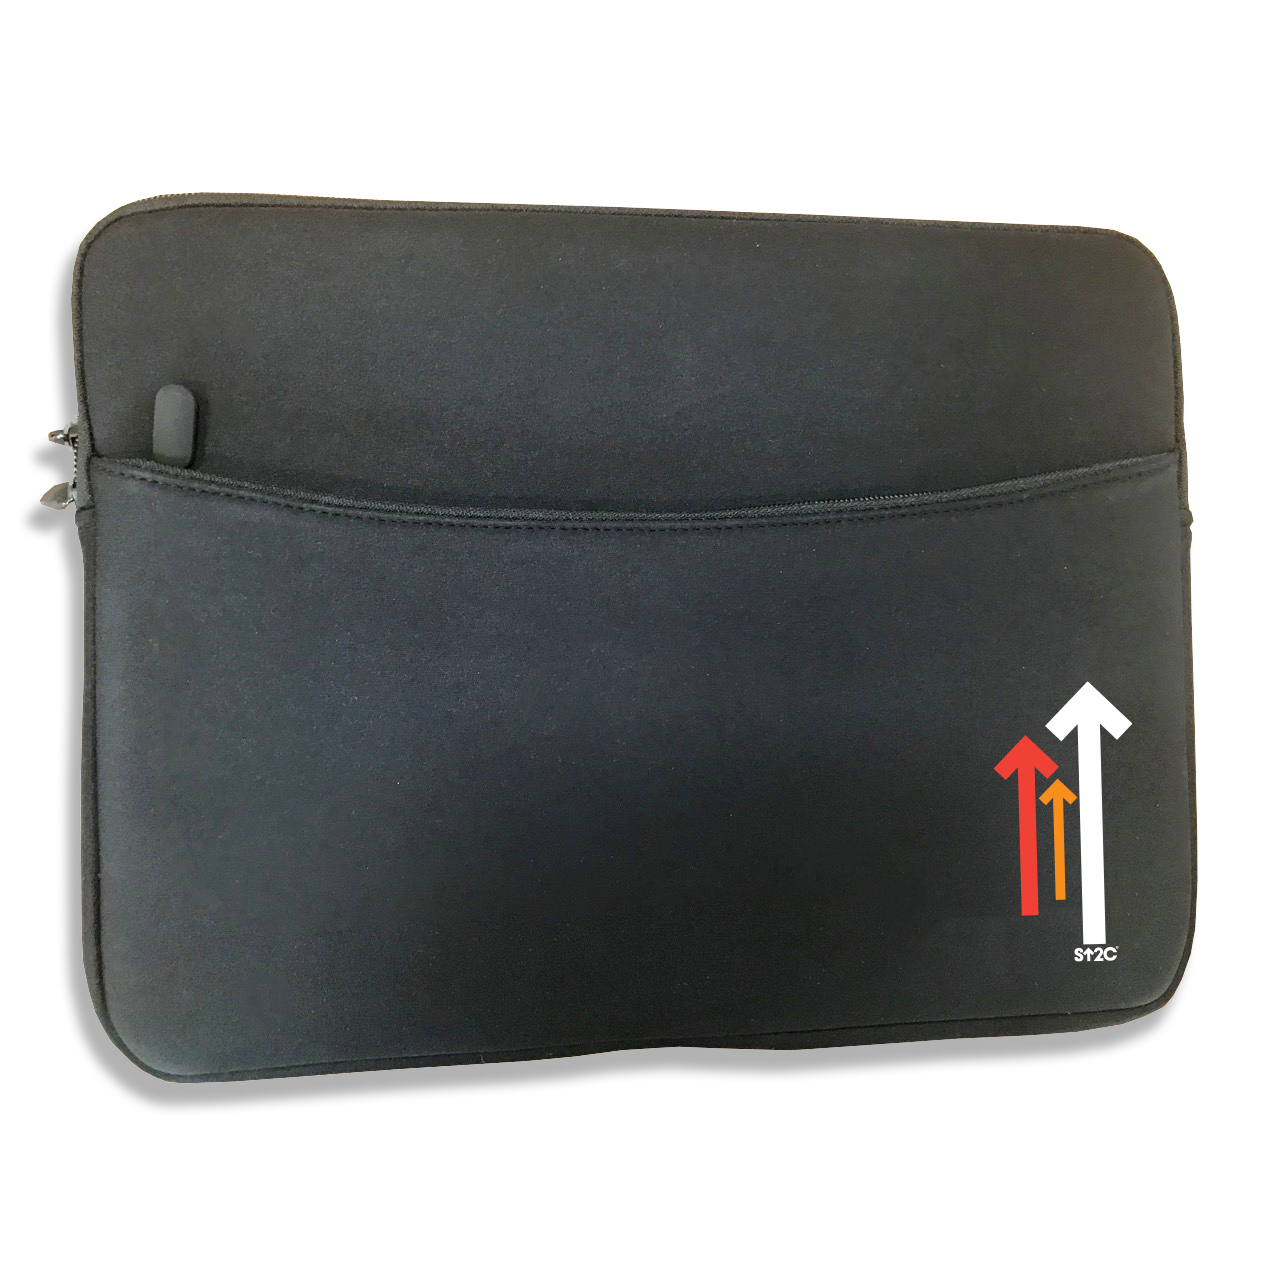 SU2C Short Logo Arrow Laptop Sleeve